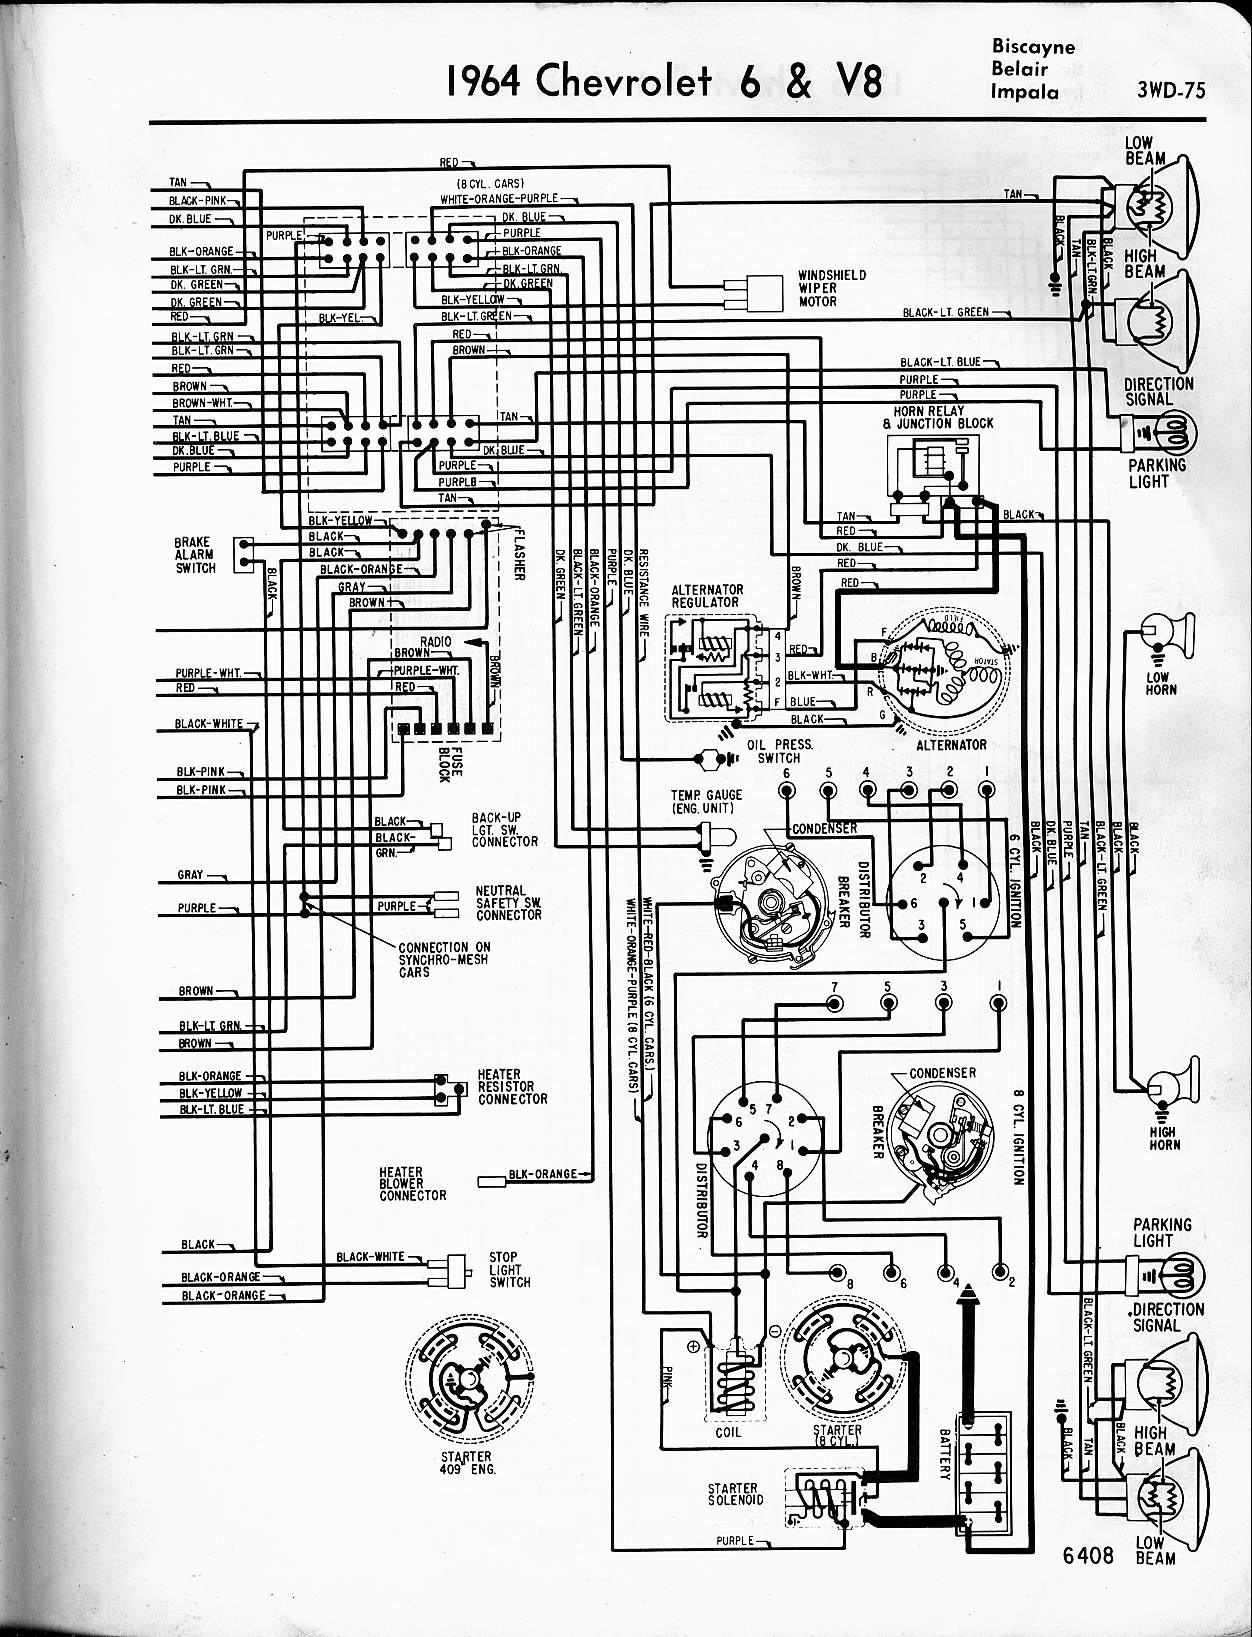 62 nova wiring diagram chevy van wiring diagram wiring diagrams impala wiring diagram wiring diagrams online 57 65 chevy wiring diagrams